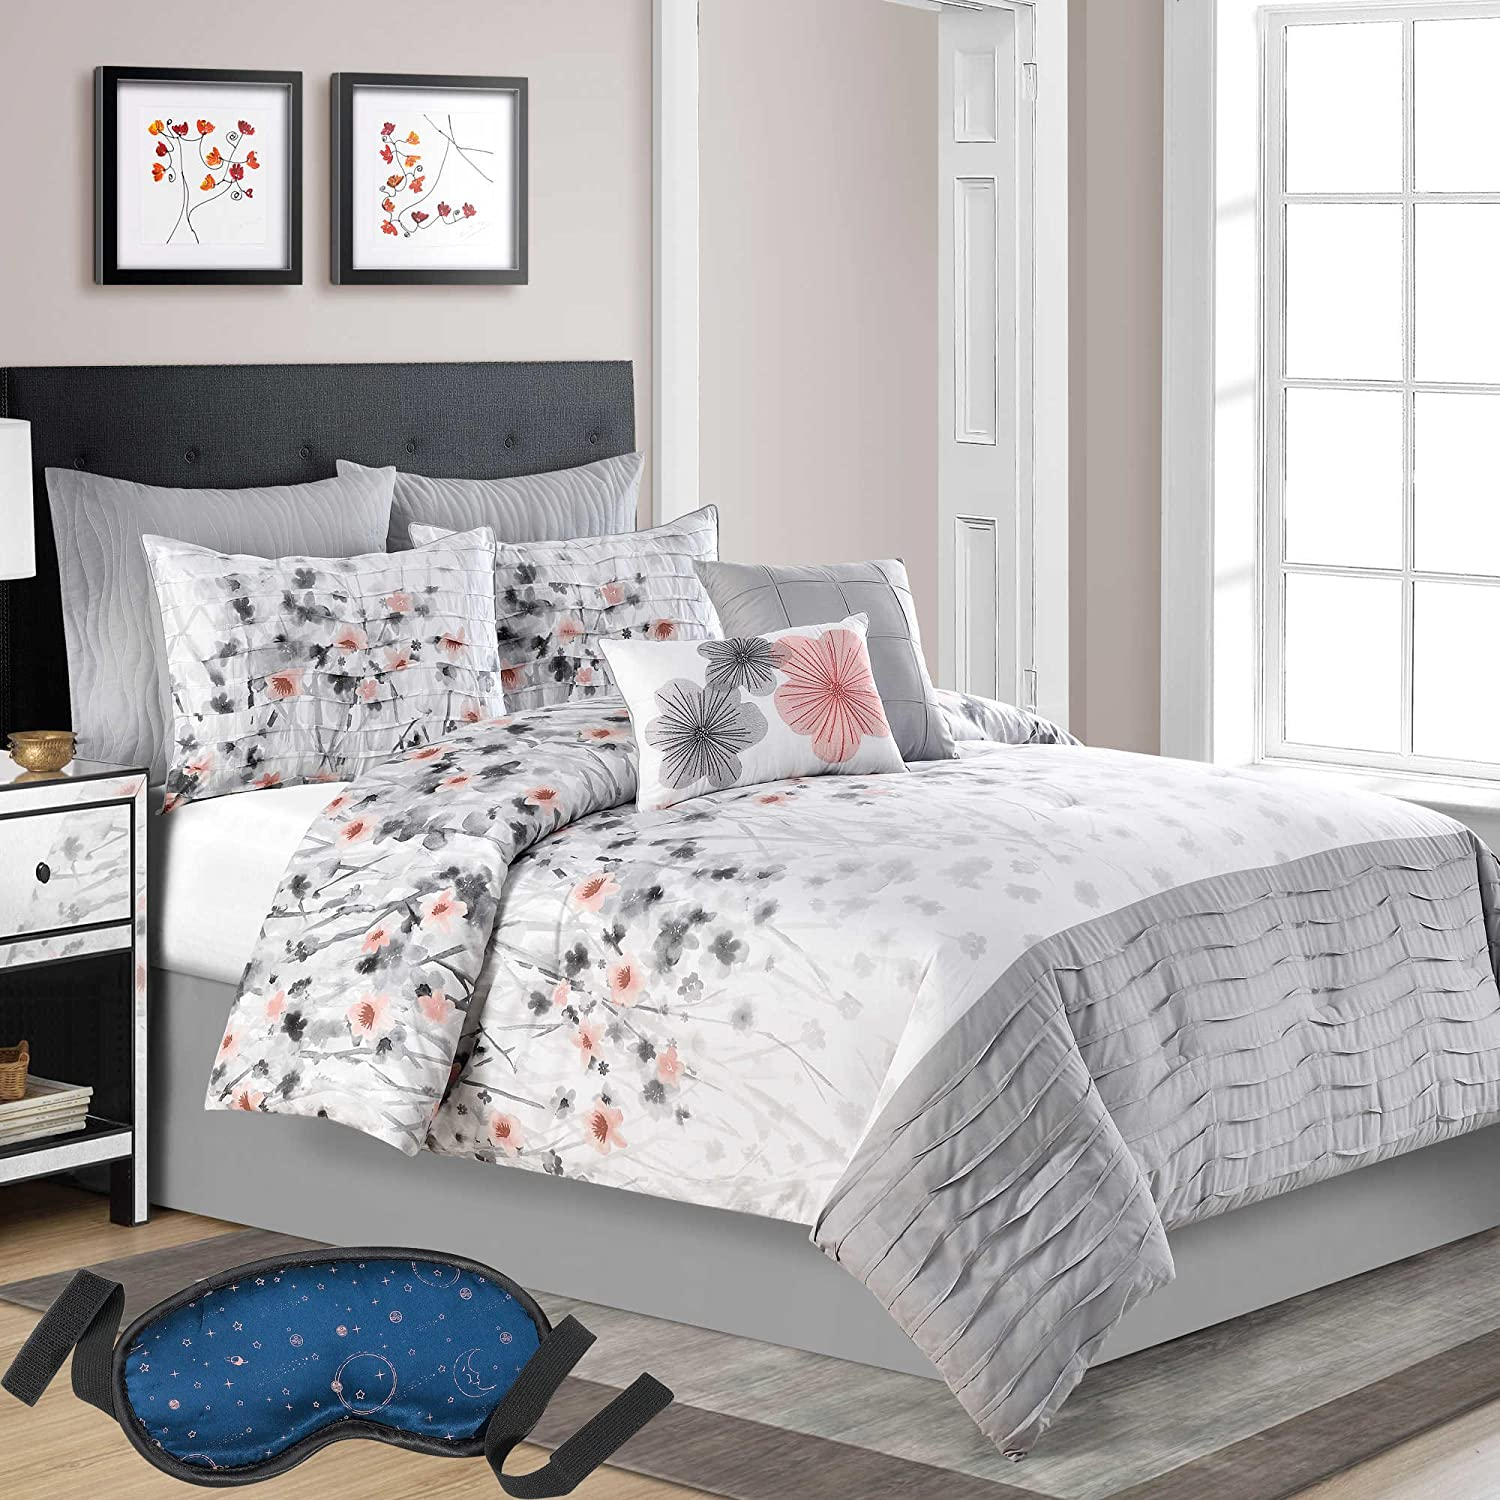 amazoncom modern elegant luxury pleated grey bedding floral and  - amazoncom modern elegant luxury pleated grey bedding floral and coralhues printed comforter set cal king ( piece bed in a bag) with sleepmask home